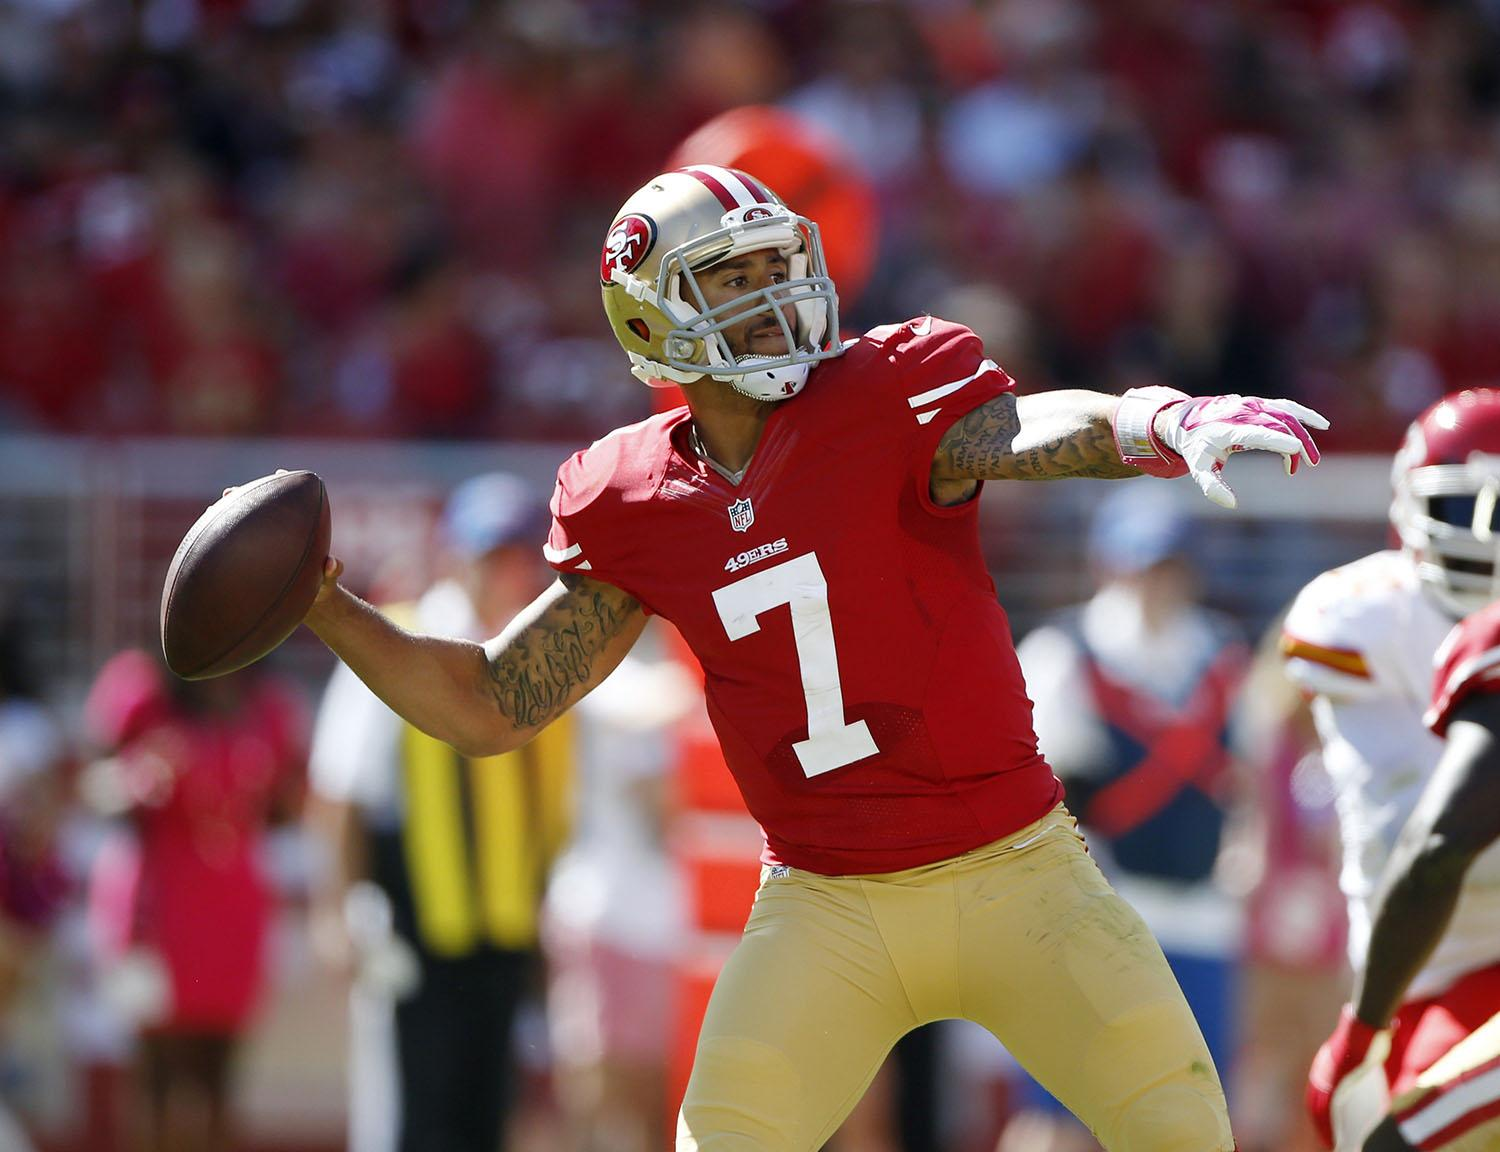 Colin+Kaepernick+should+utilize+both+his+legs+and+arm+as+he+tries+to+move+the+ball+against+a+tough+Seahawks+defense